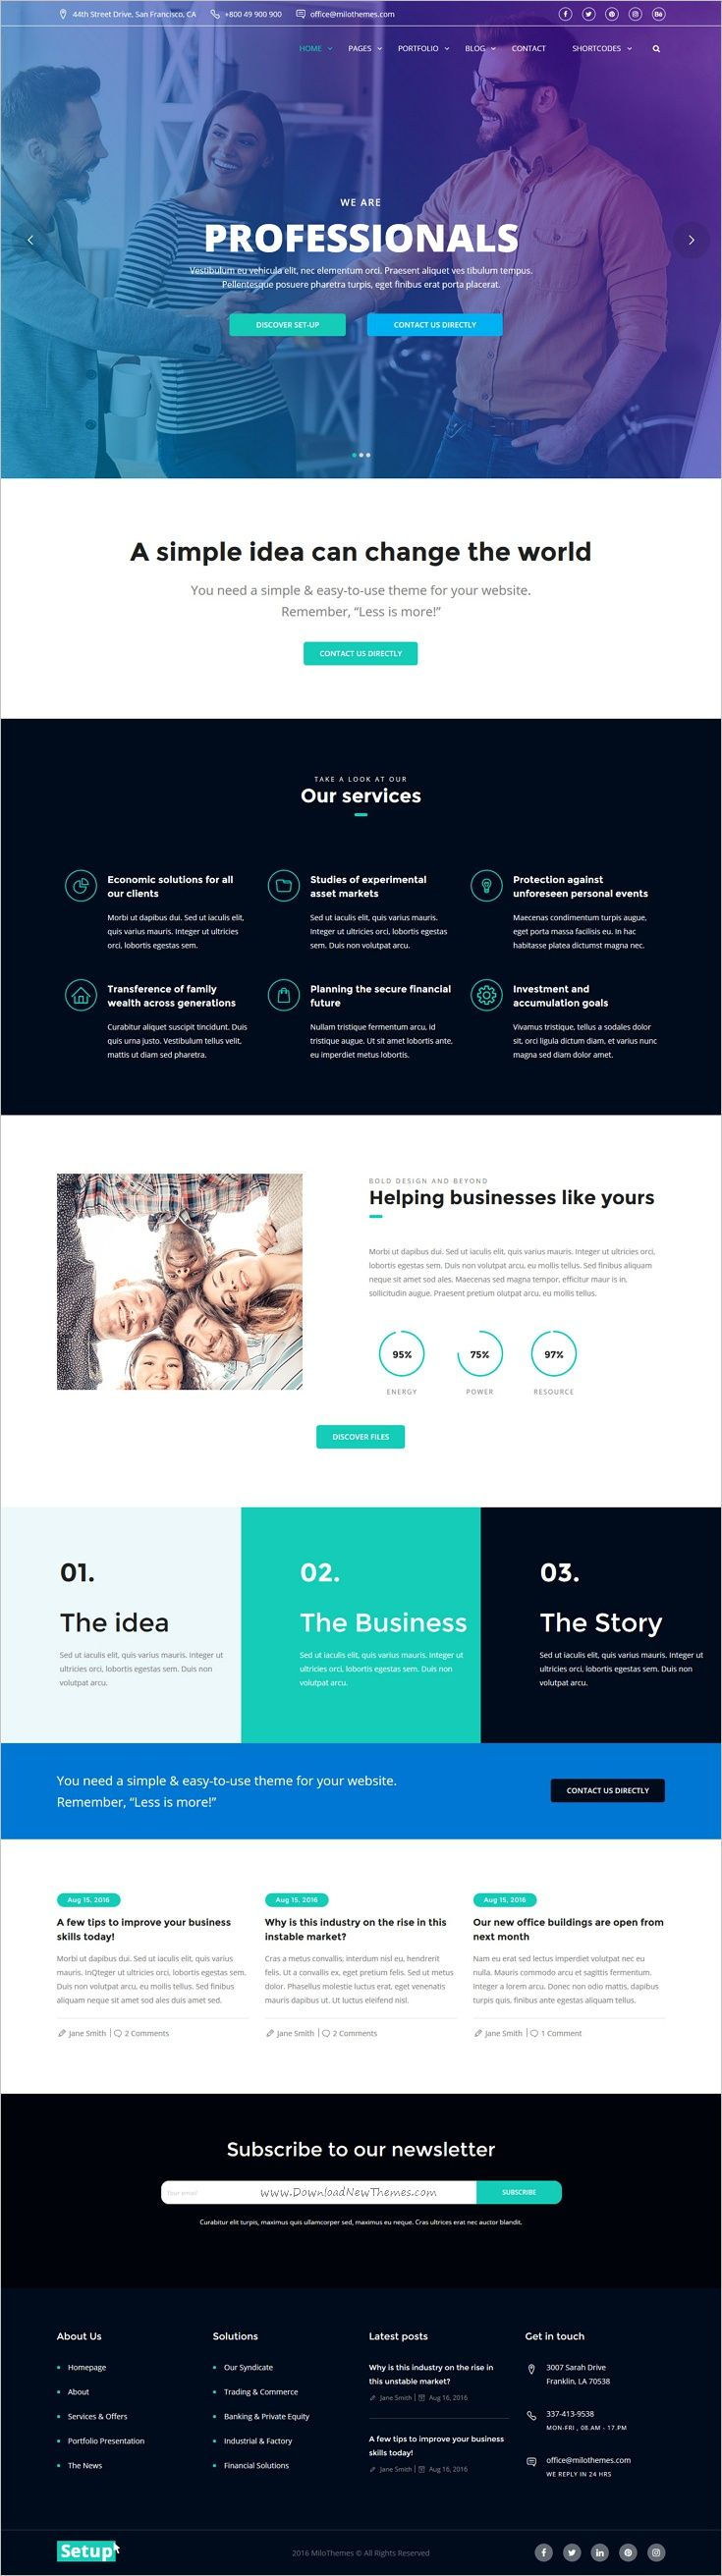 Setup is a perfect modern design 6 in 1 #WordPress theme for #webdesign #Corporate, Finance, Consulting, Banking, Industrial, or a freelance website download now➩ https://themeforest.net/item/setup-highperforming-responsive-modern-wordpress-theme/17699634?ref=Datasata